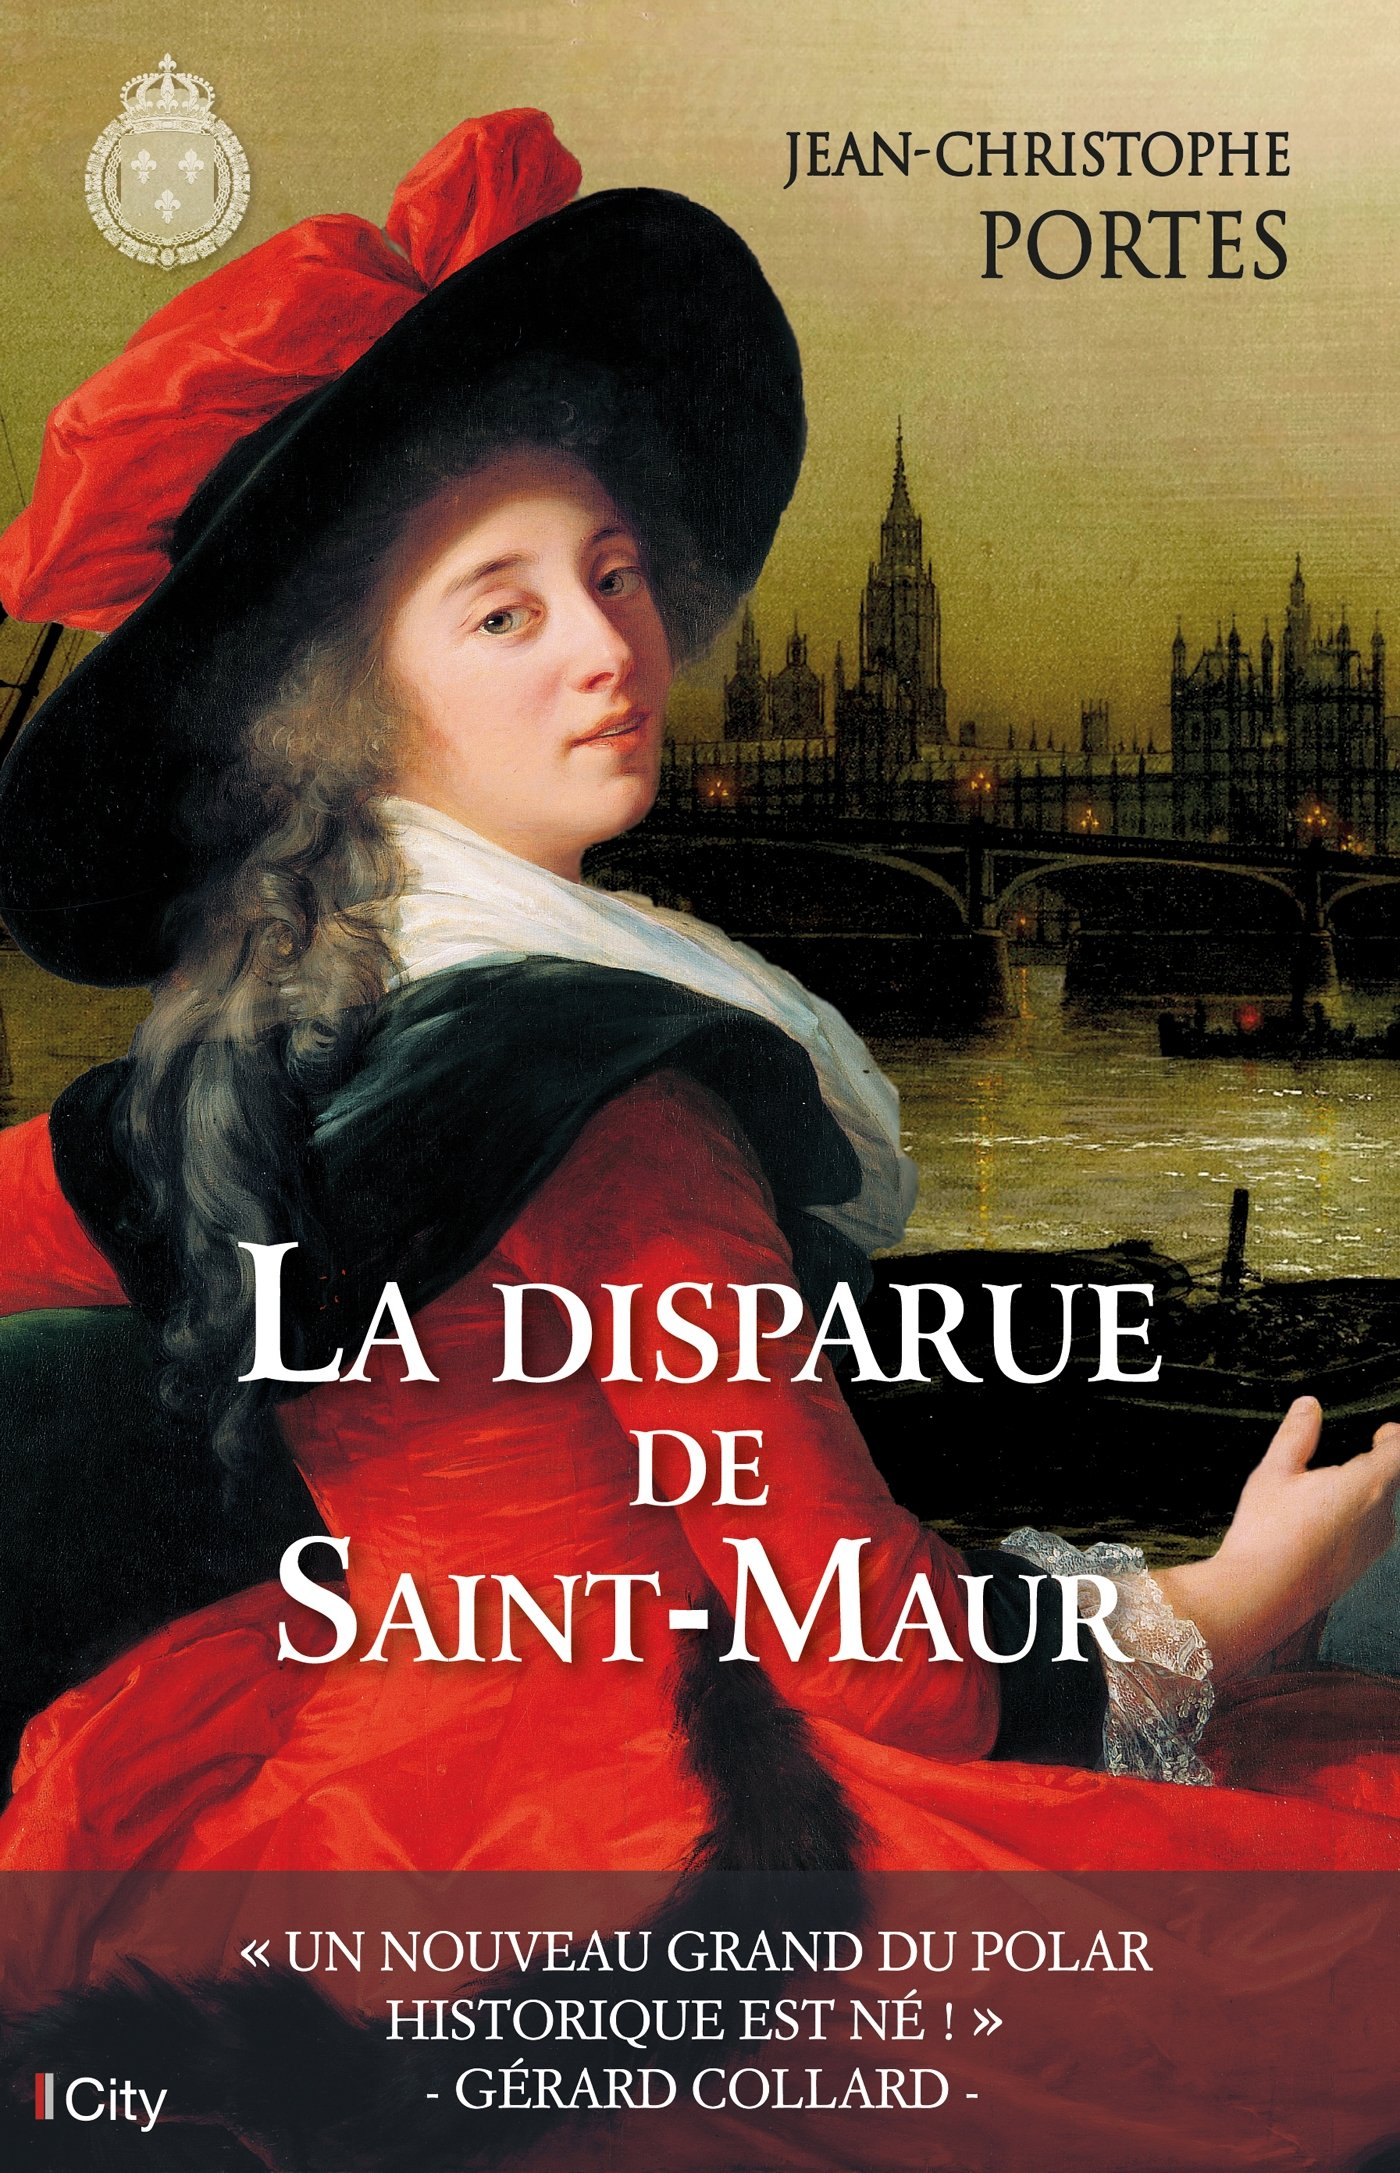 La disparue de Saint-Maur Broché – 15 novembre 2017 Jean-Christophe Portes City Edition 2824610999 Romans